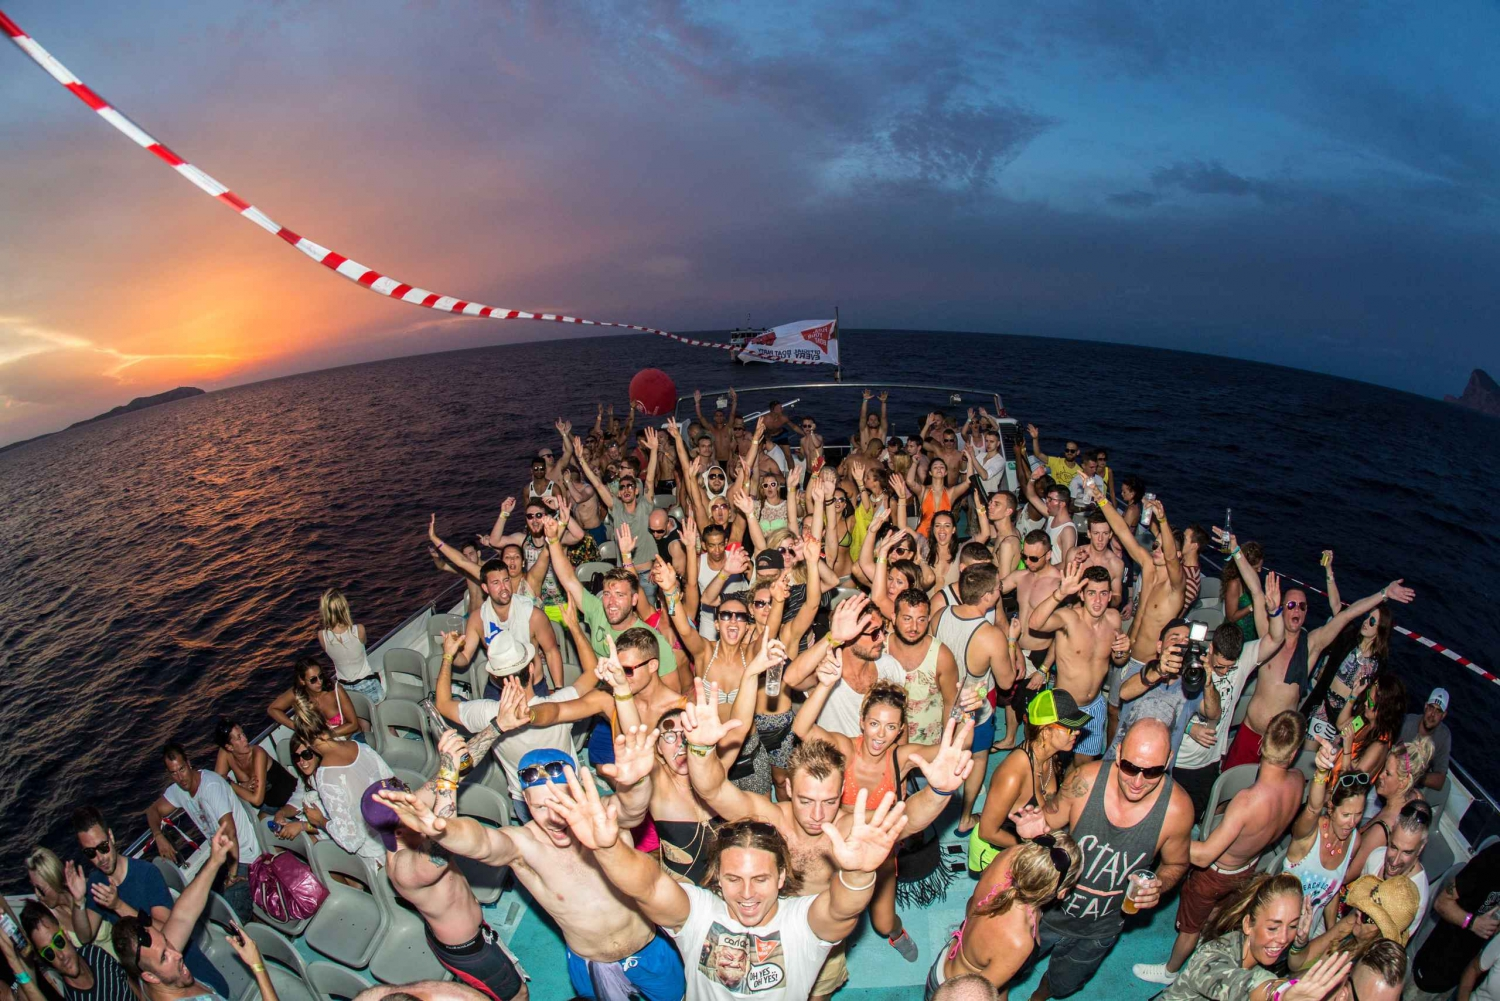 Sunset Boat Party with Open Bar and Combo Ticket